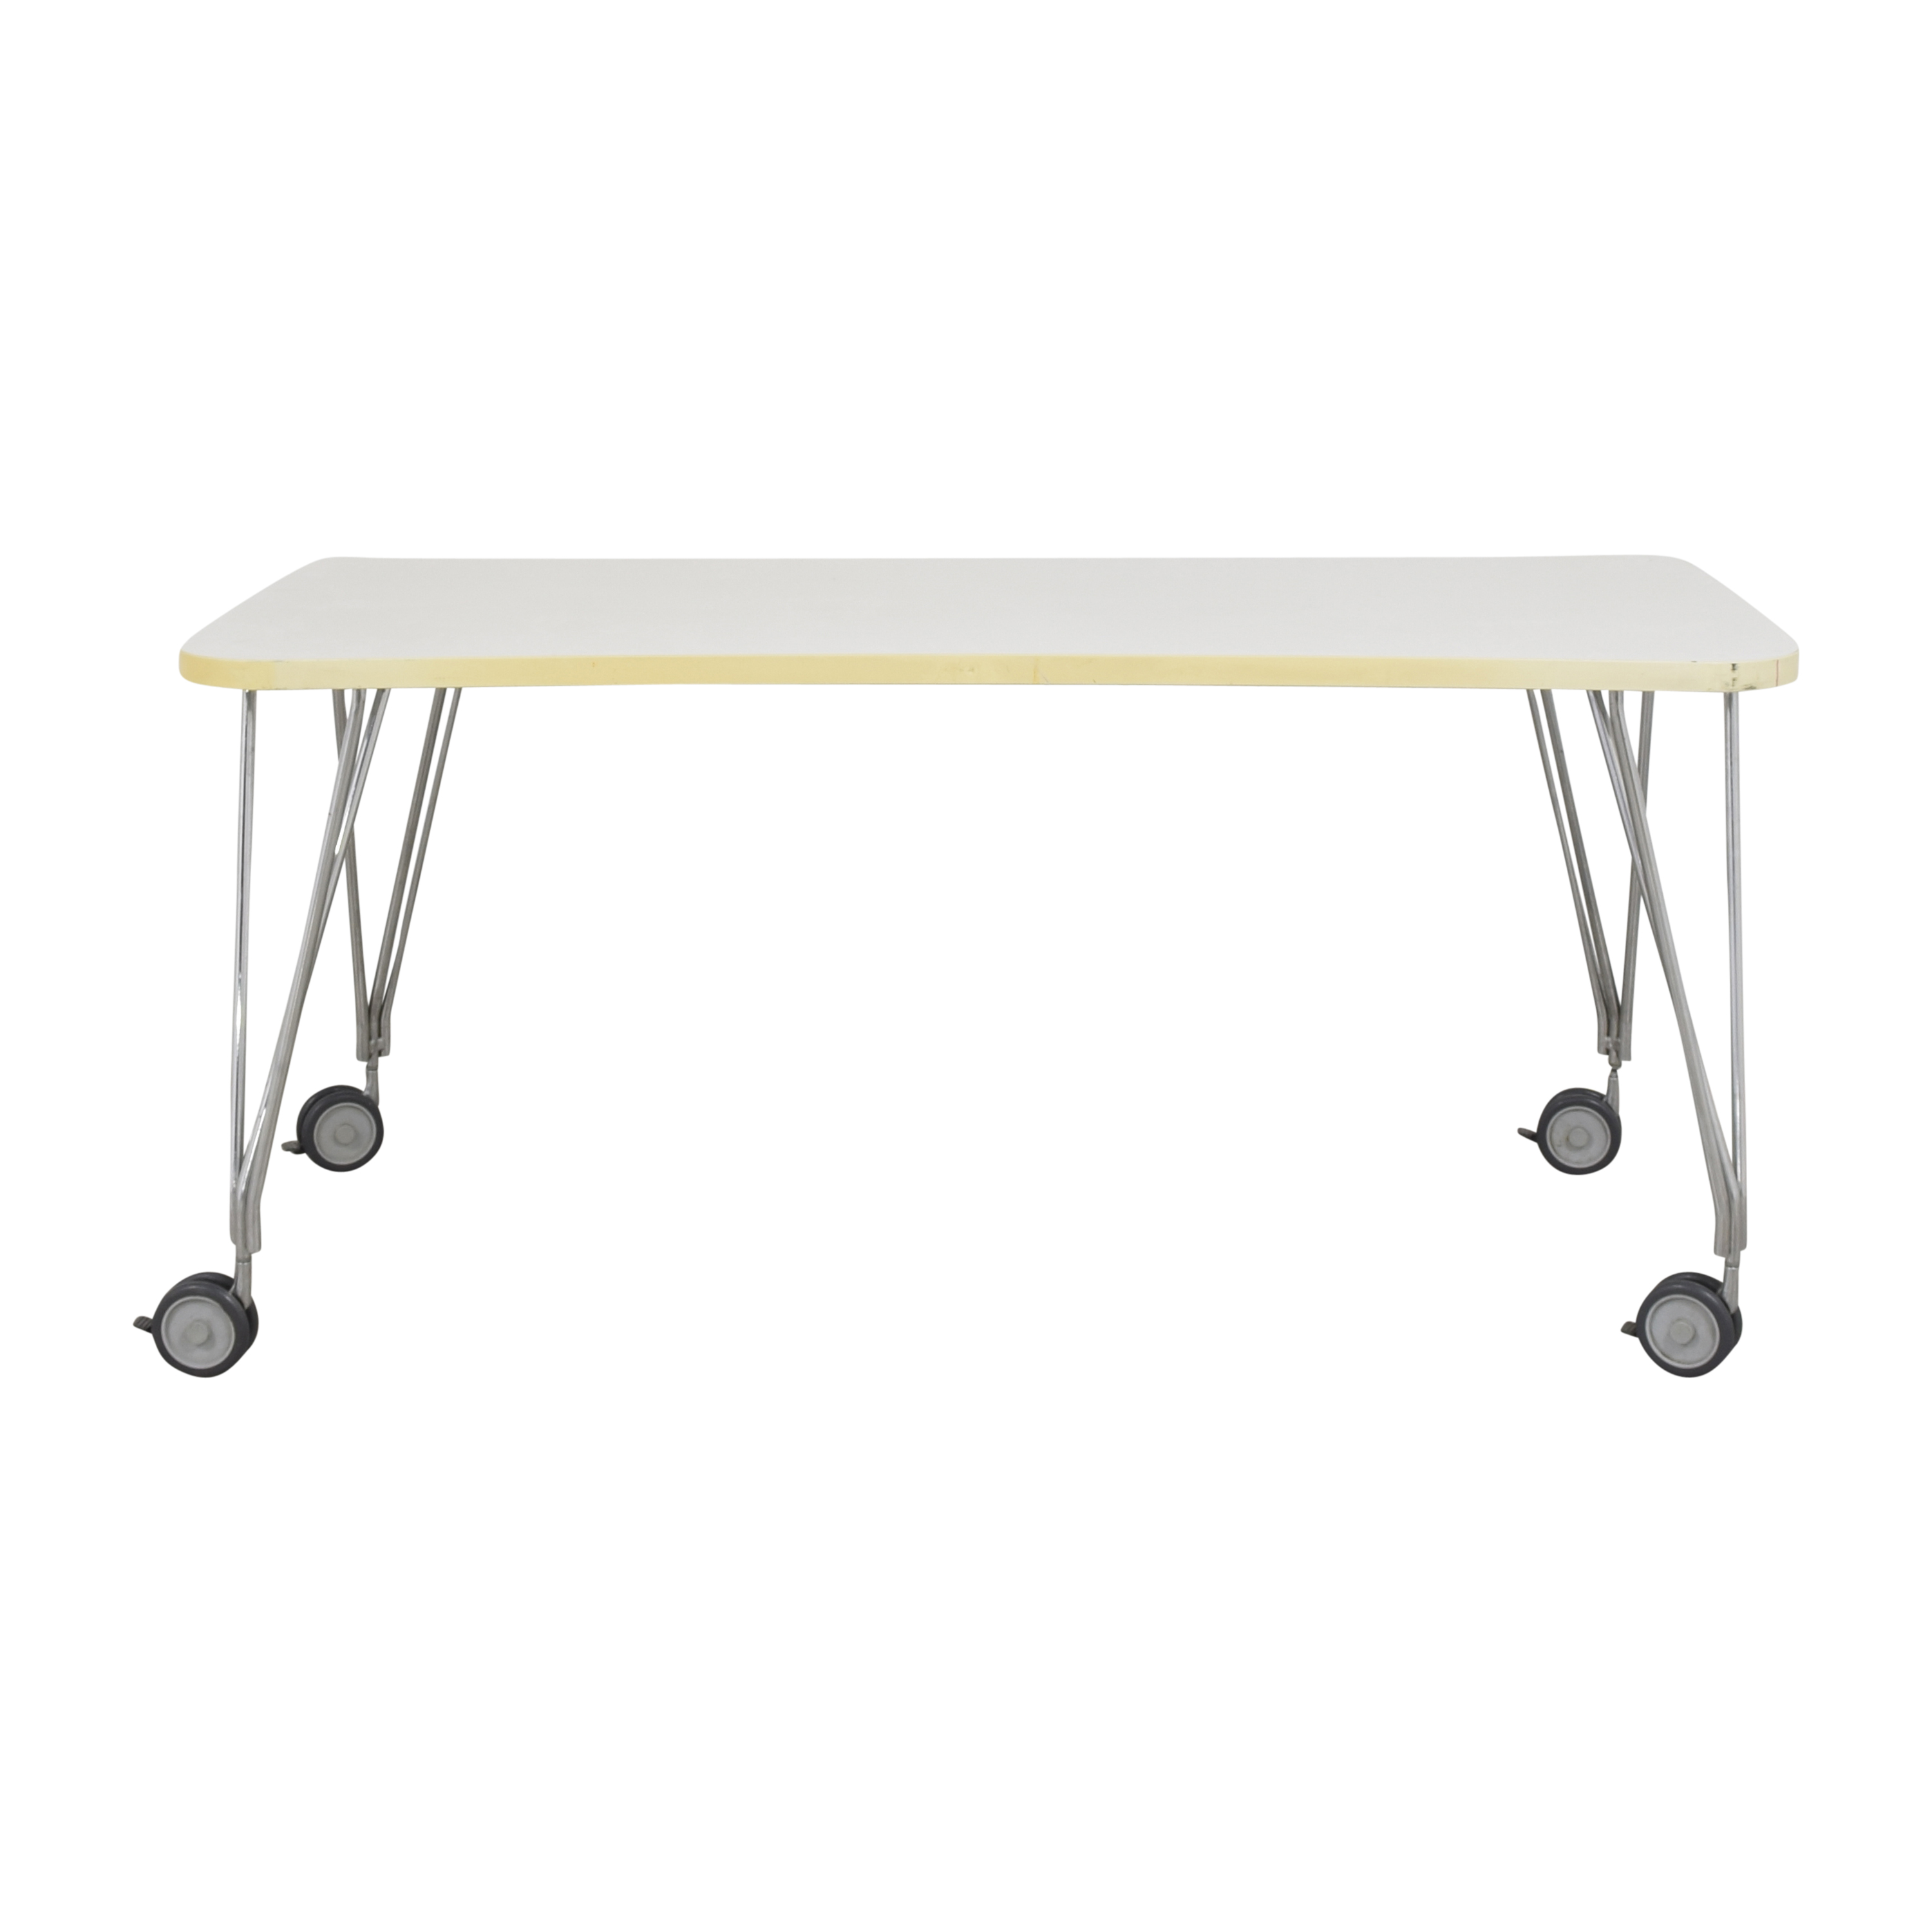 Kartell Kartell Max Table with Wheels price